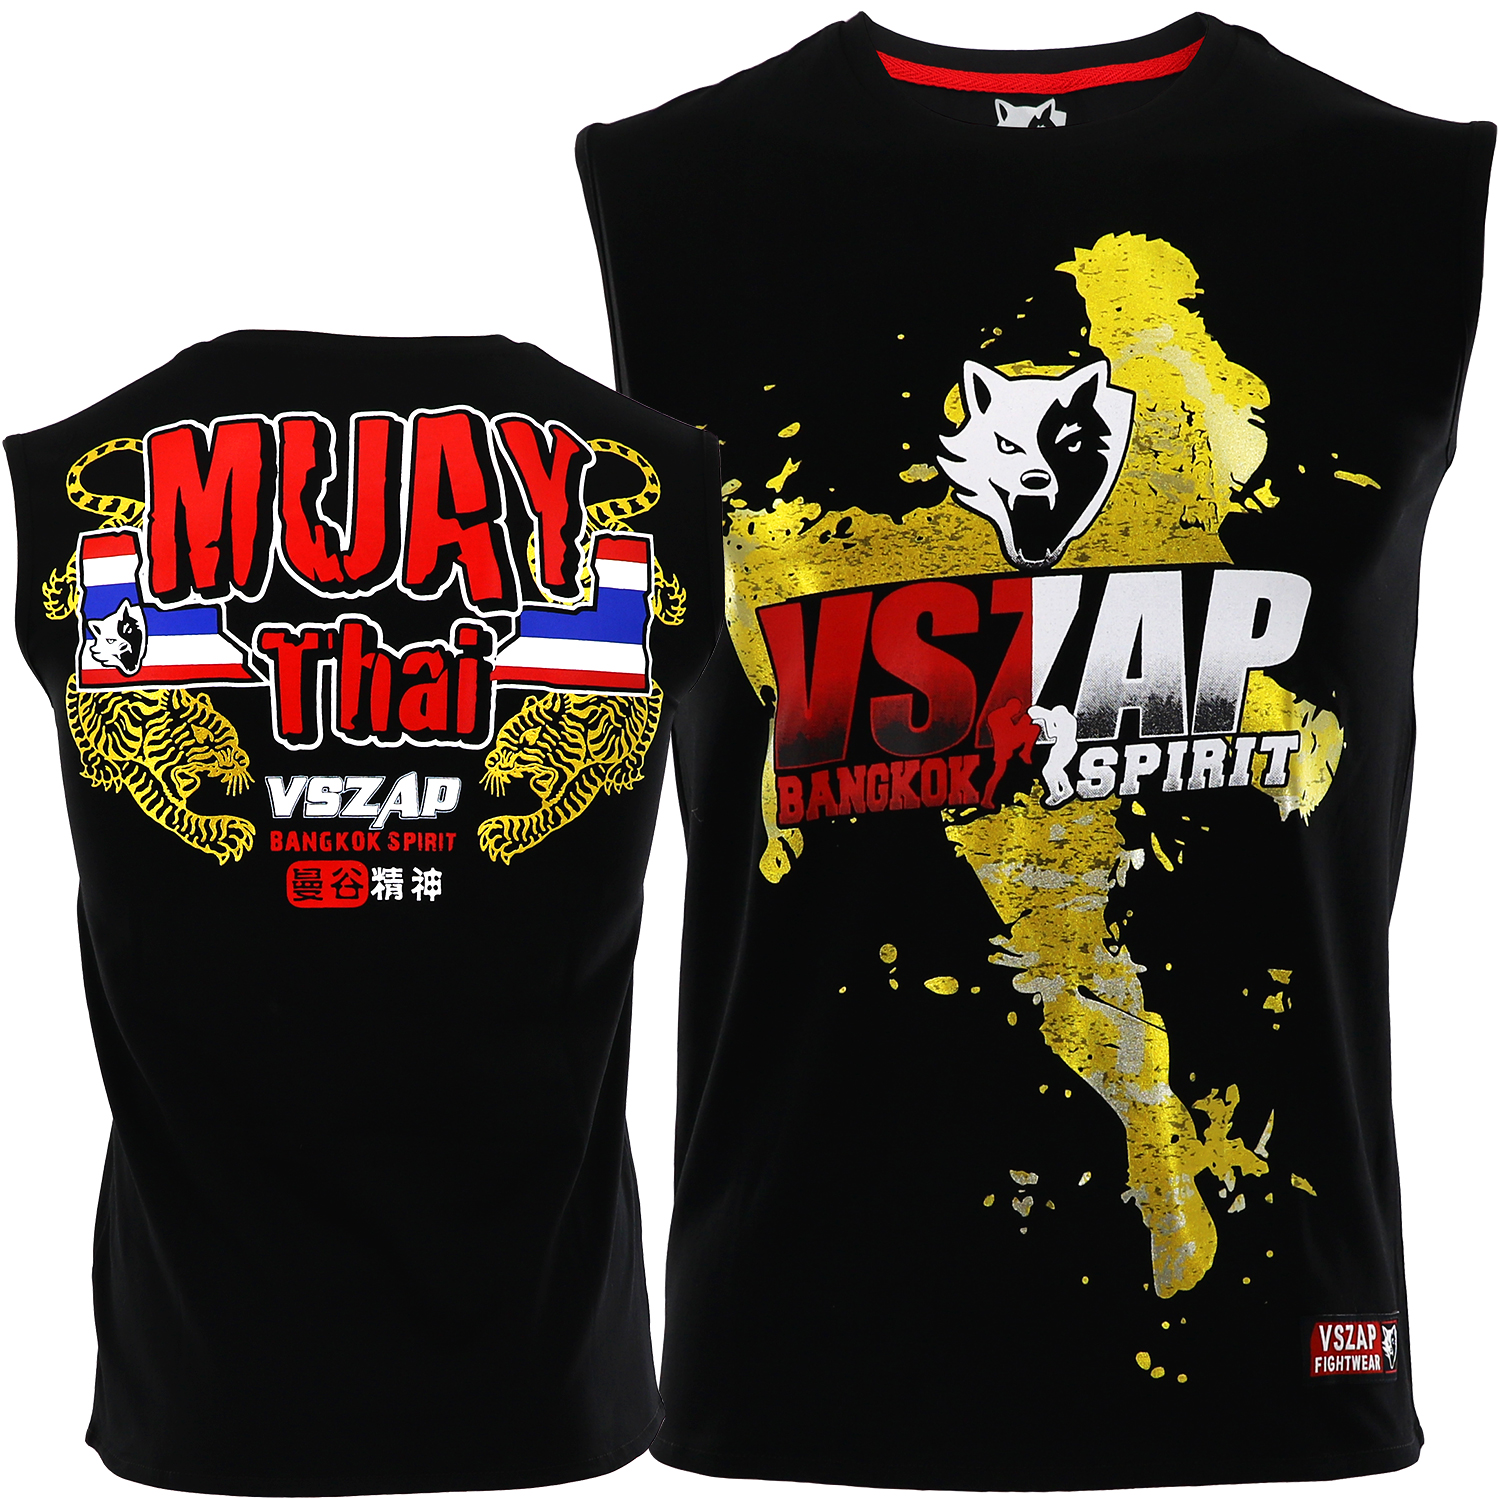 Charitable Vszap Thai T-shirt Muay Thai Sleeveless Stretch Quick-drying Boxing Vest Training Male Fitness Sport Fight Mma Fighting 2 Colors Demand Exceeding Supply